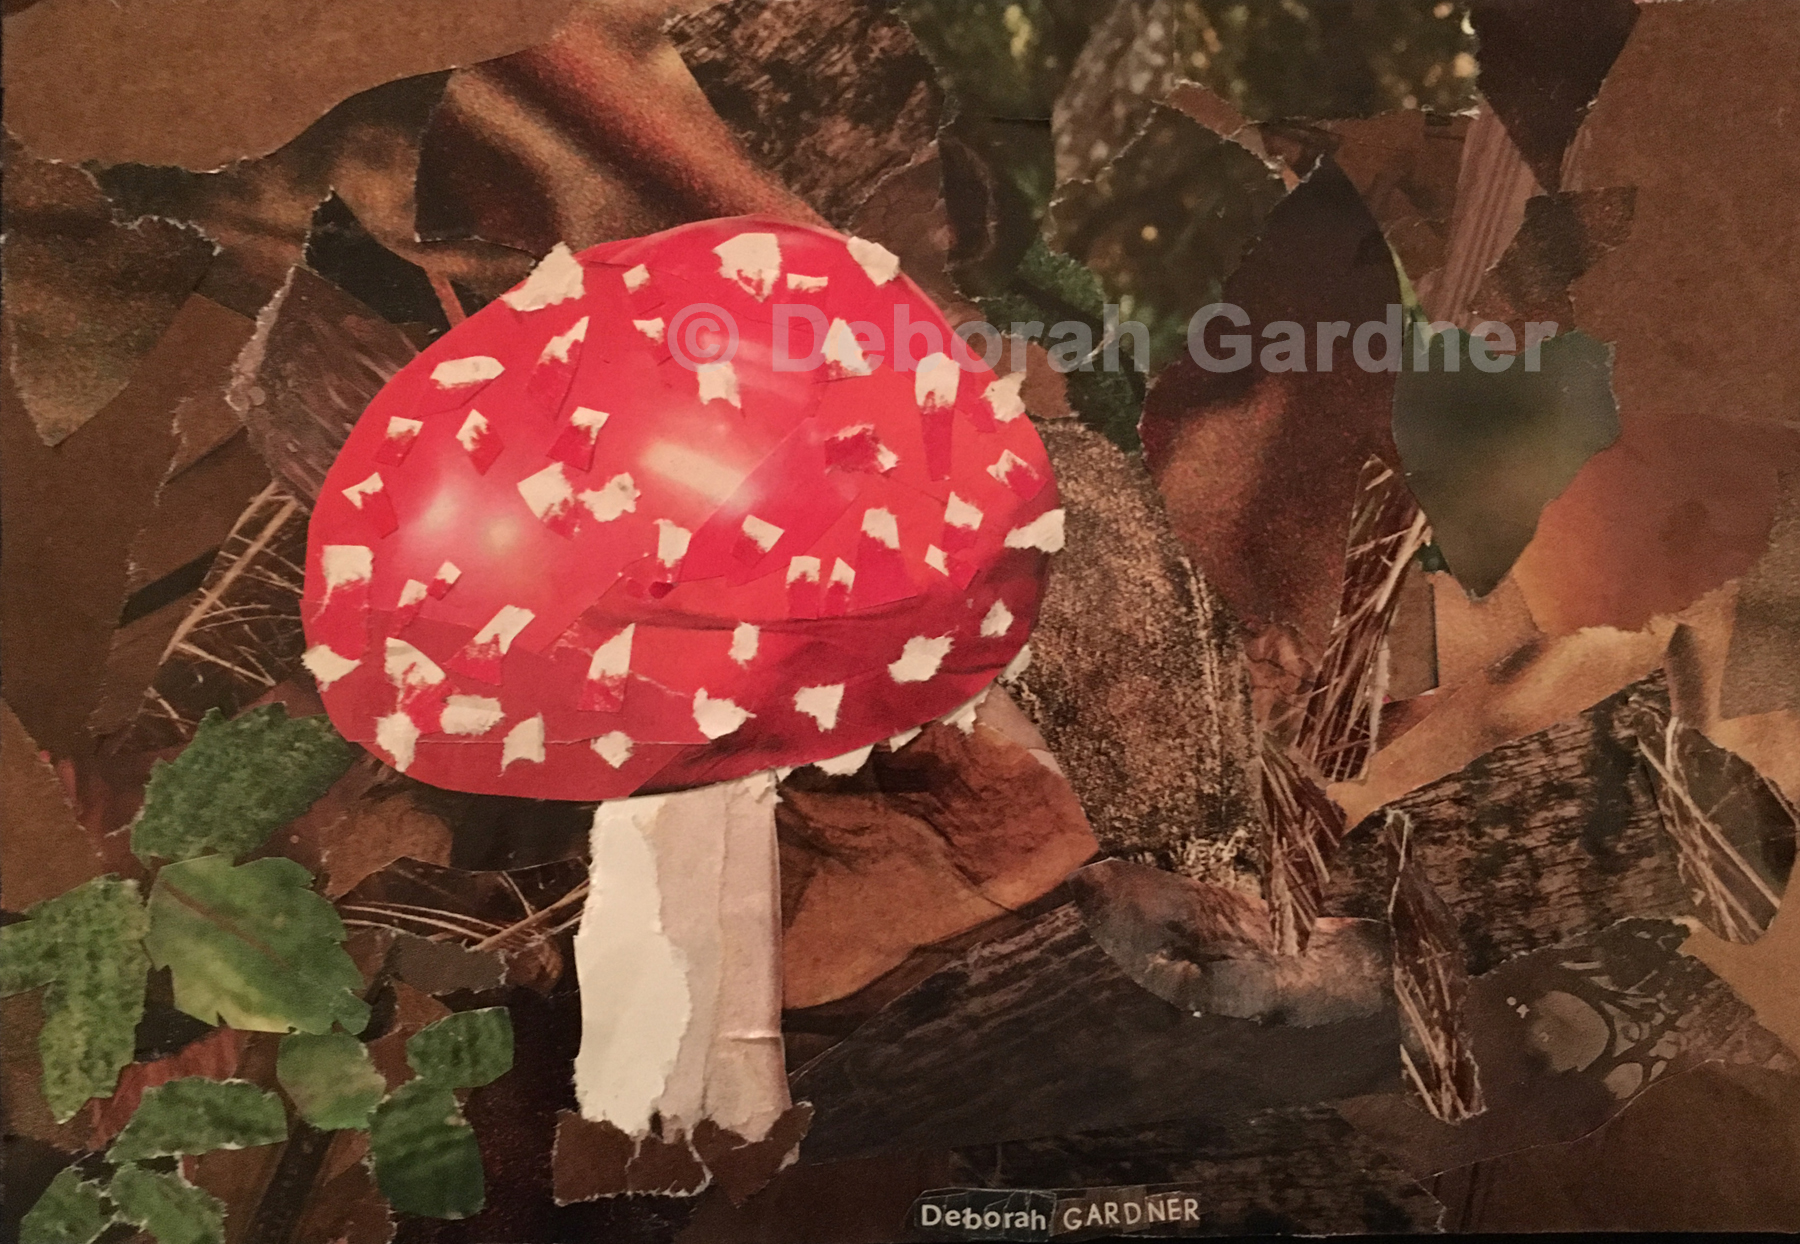 A collage depicting an Amanita muscaria mushroom––a classic red cap with white spots and a white stem.